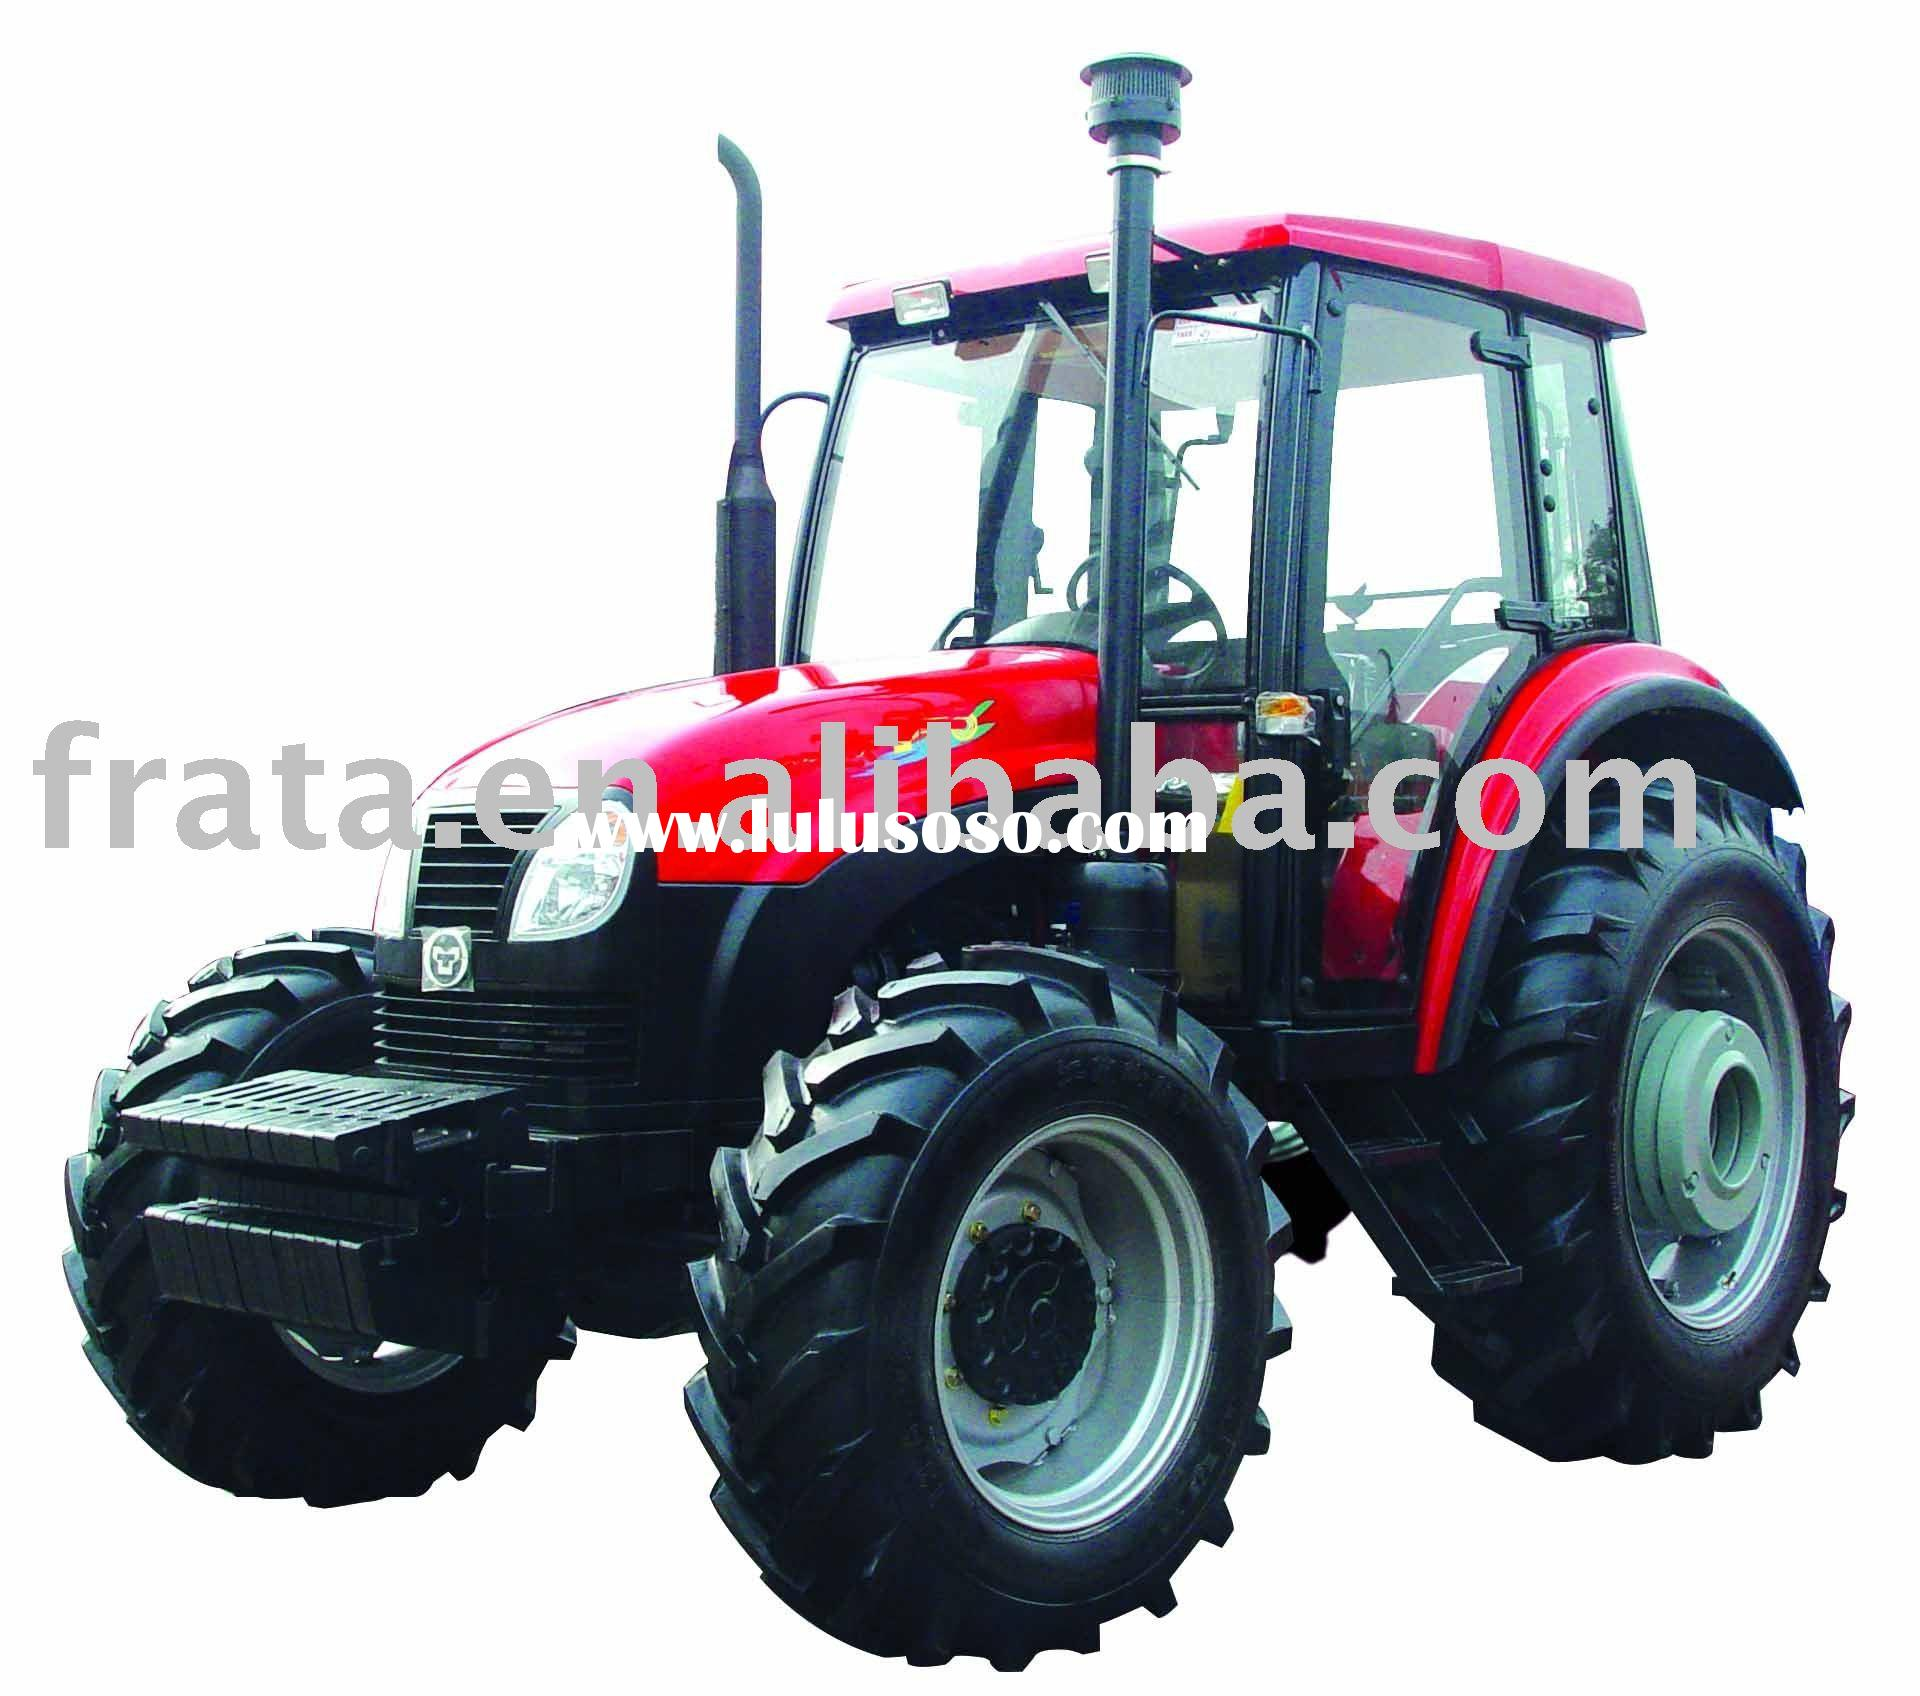 Hot sale low price four wheel Tractor for African market